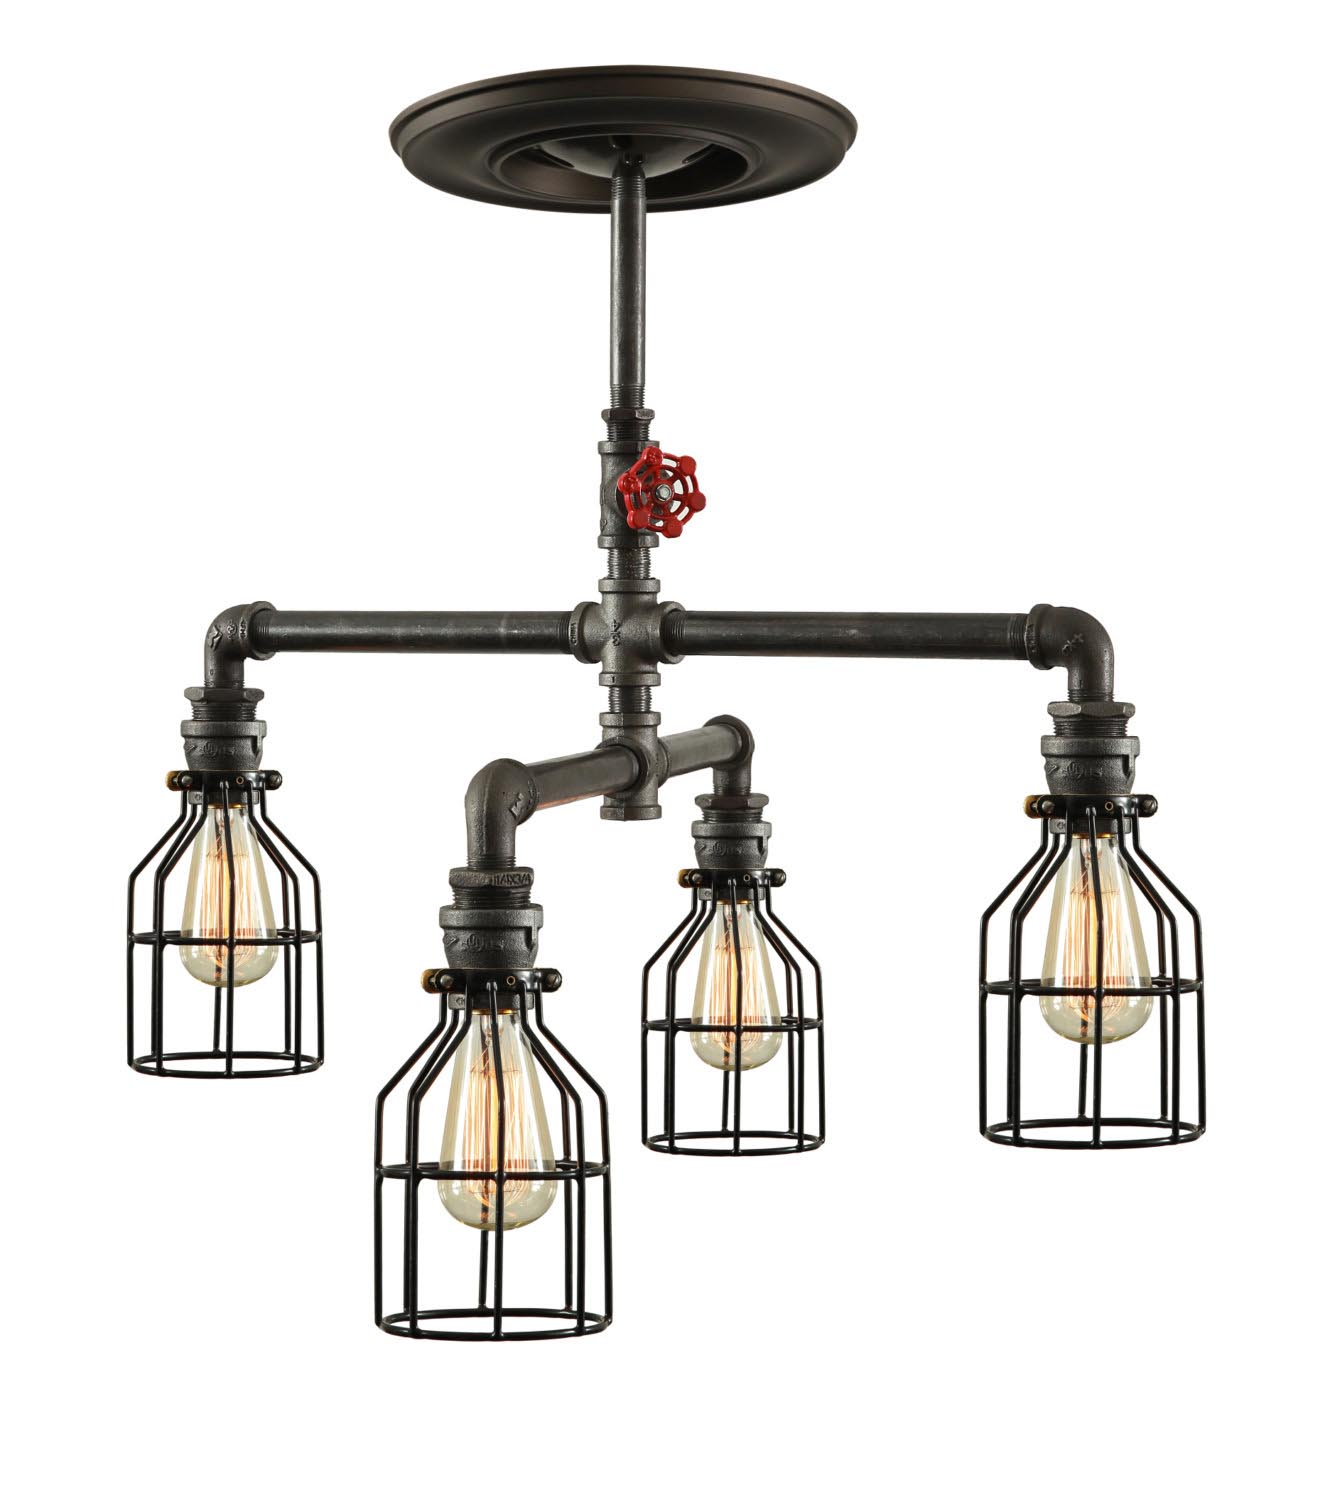 Ceiling Bar Light Fixtures